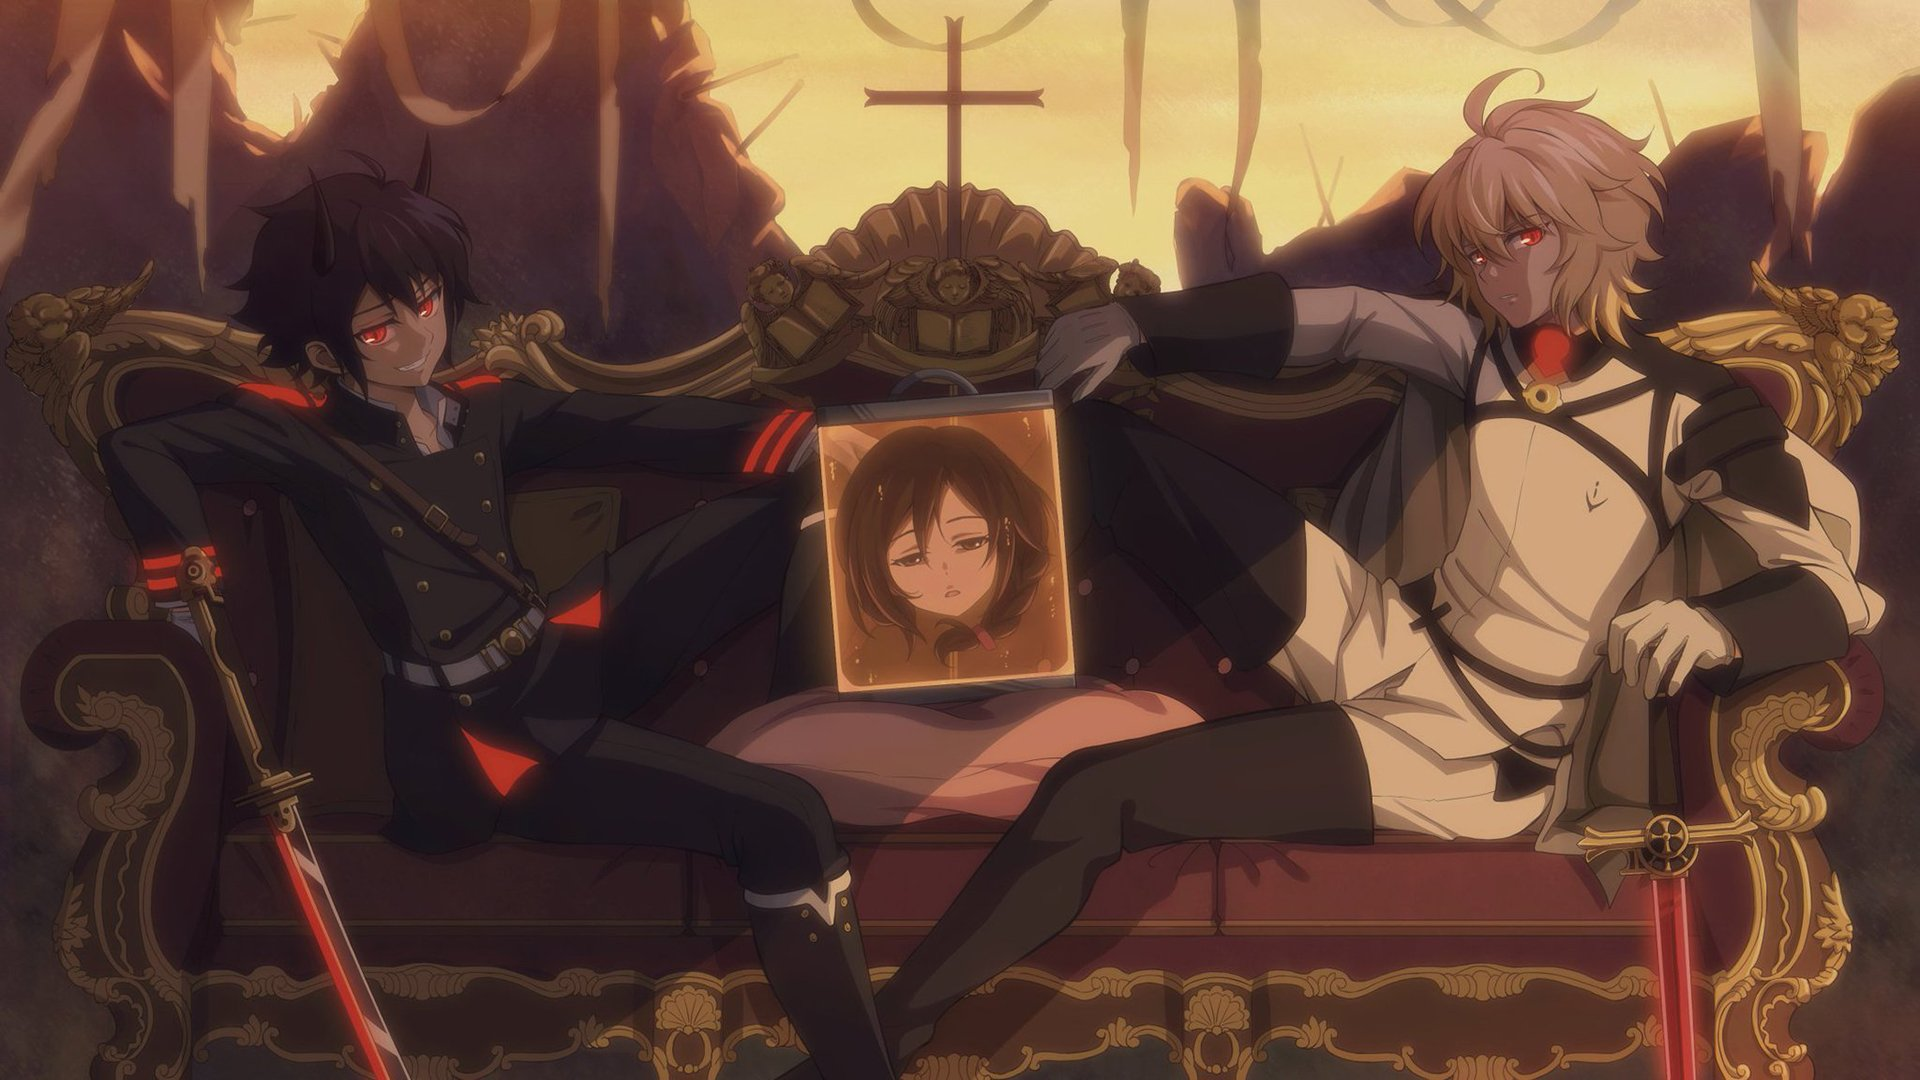 Enjoyable Seraph Of The End Hd Wallpaper Background Image Machost Co Dining Chair Design Ideas Machostcouk